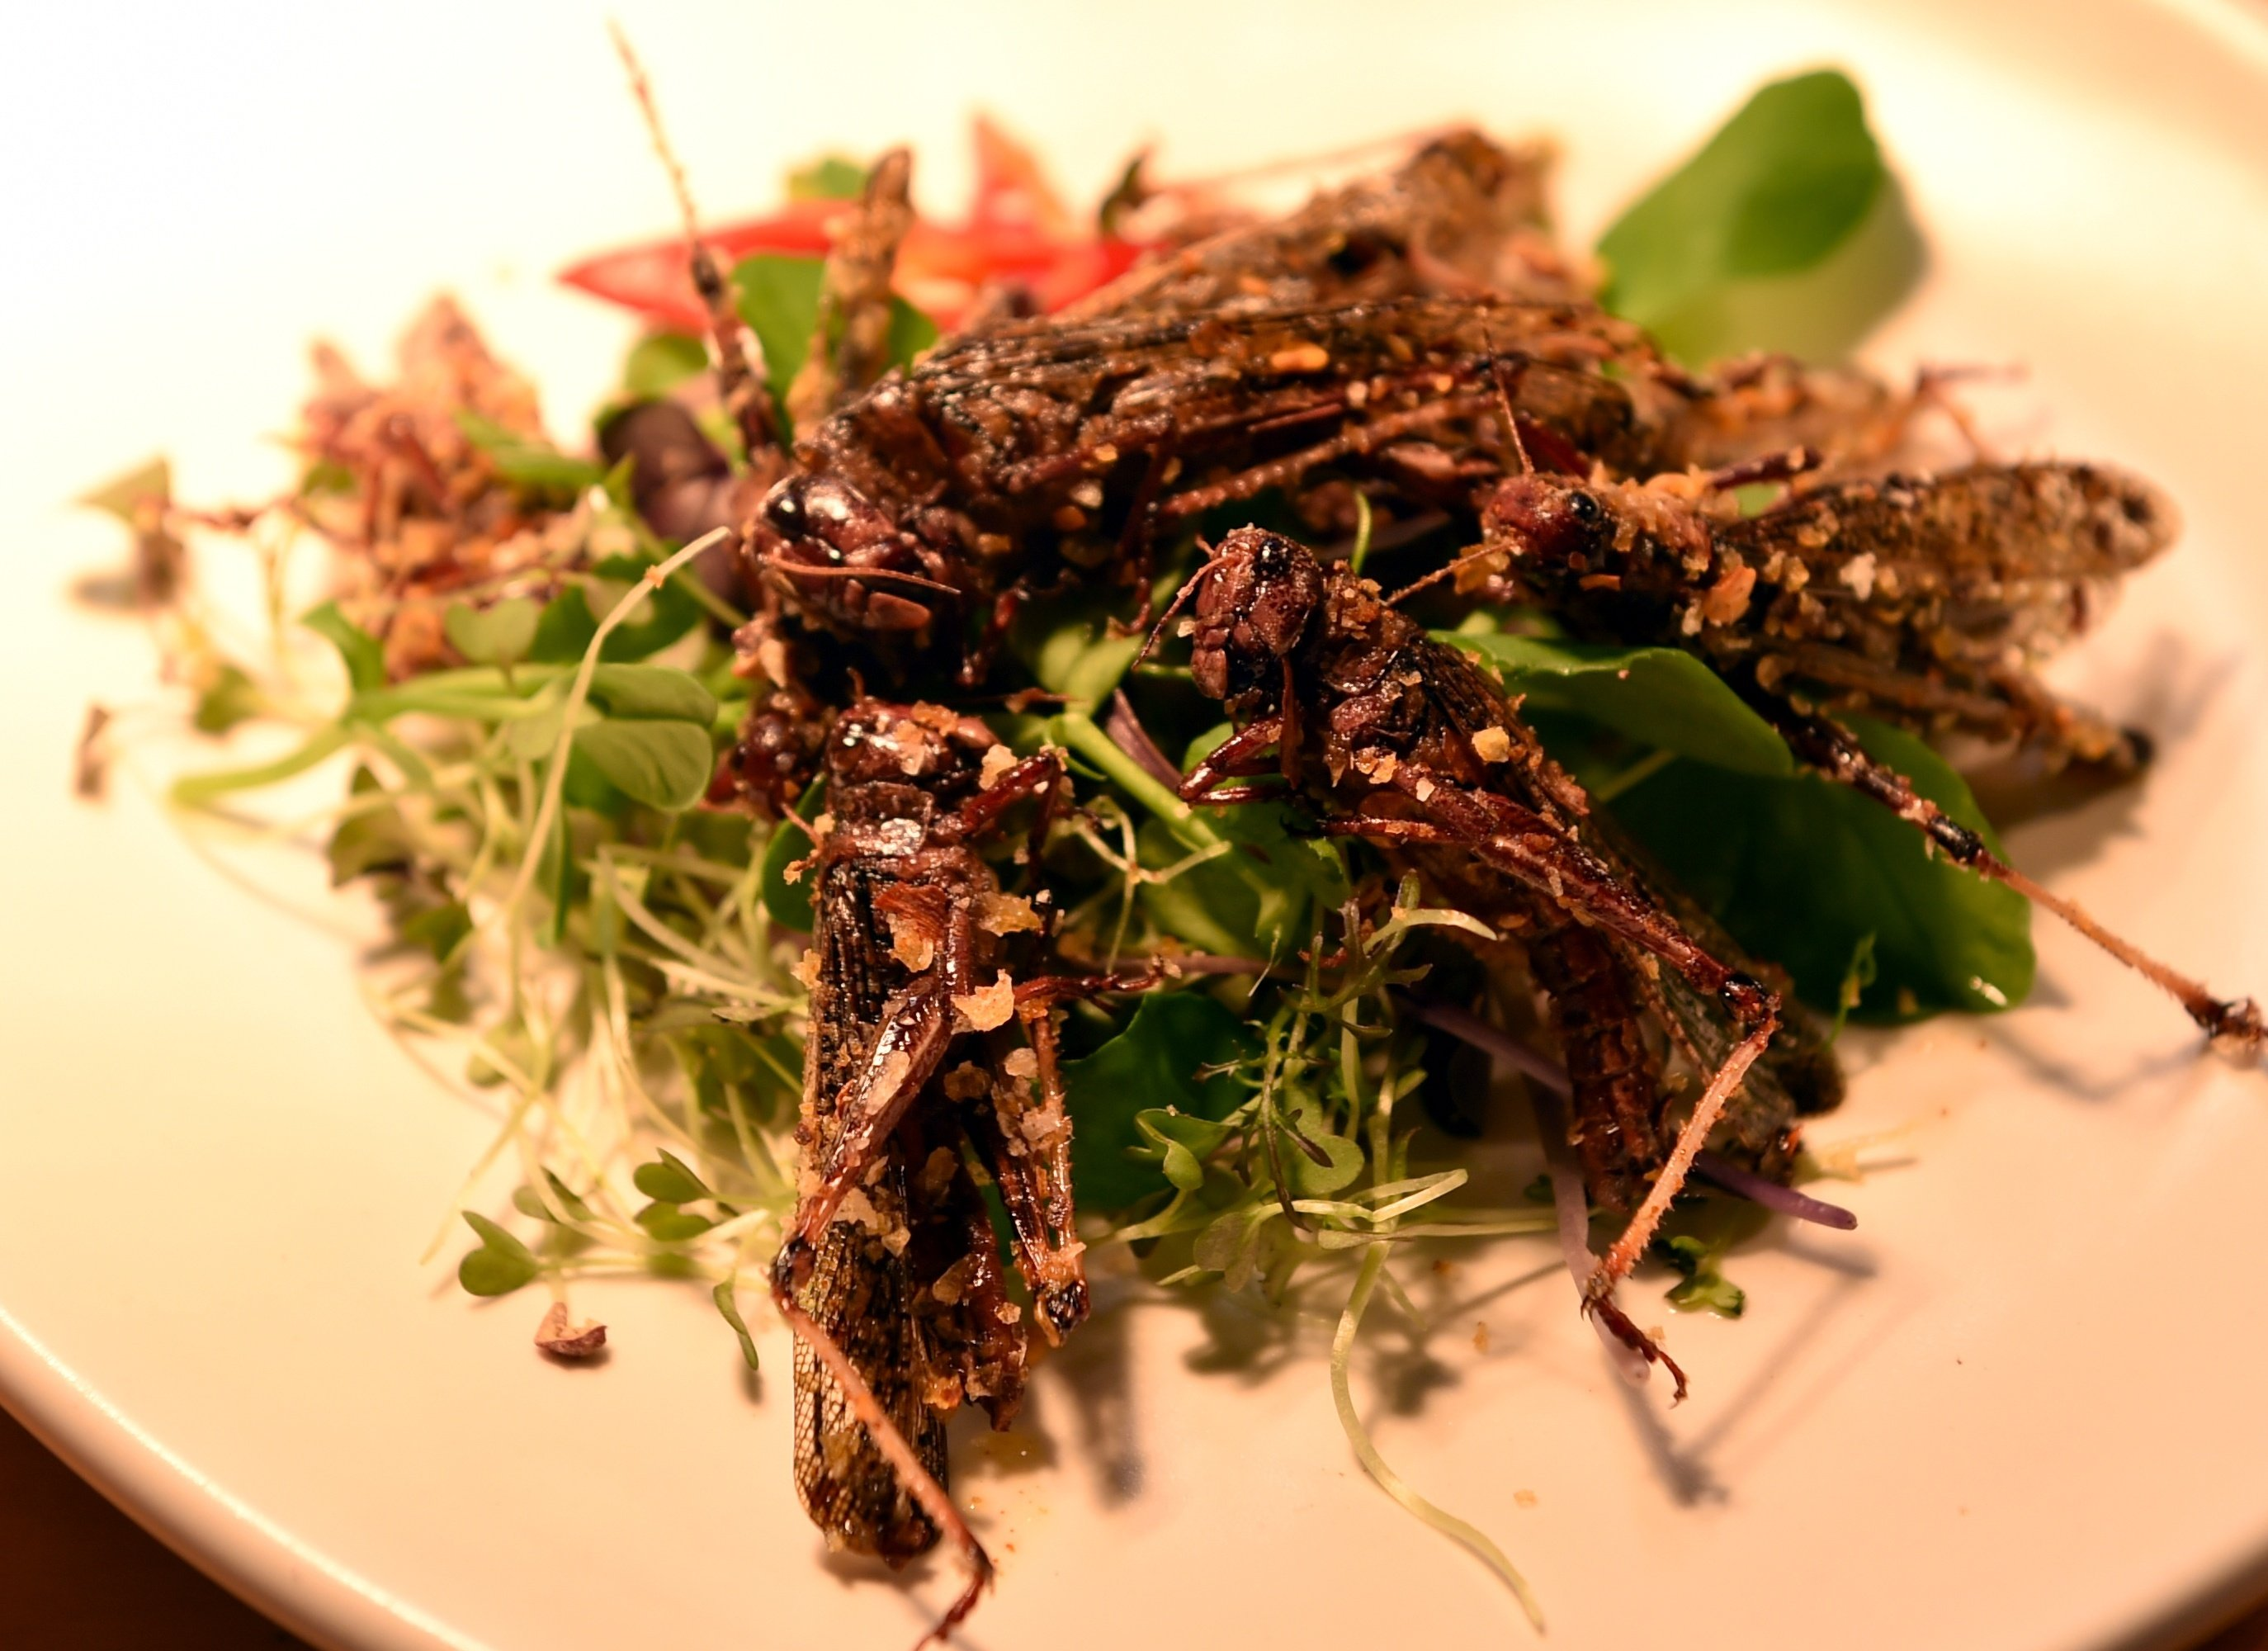 Image result for Locusts food